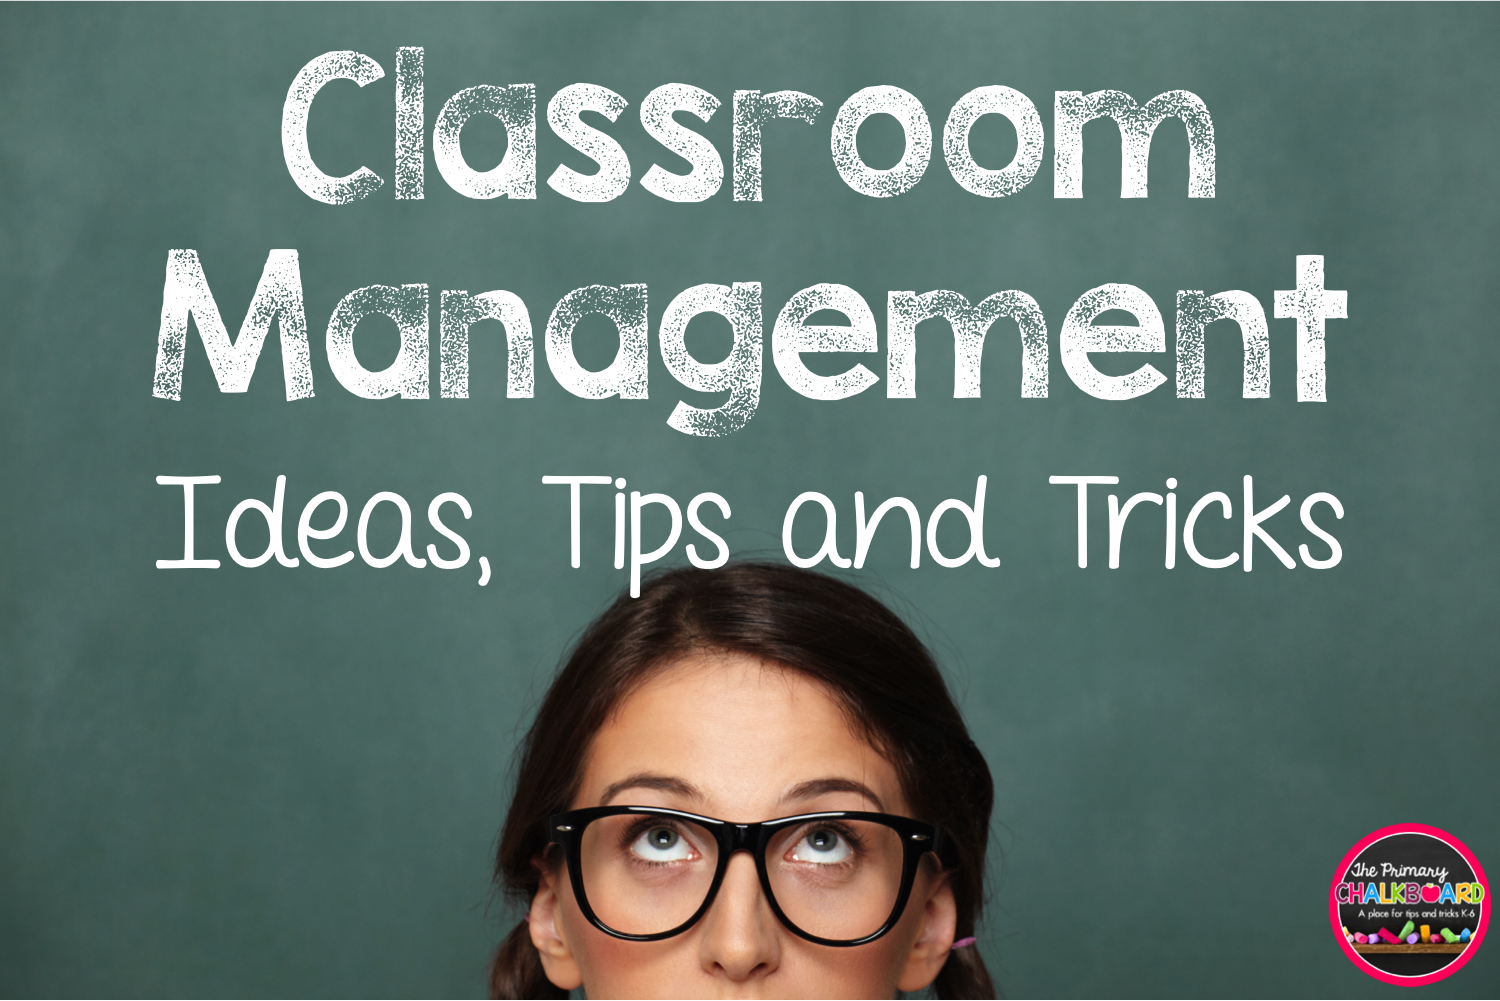 Classroom Management Ideas : Primary chalkboard classroom management ideas